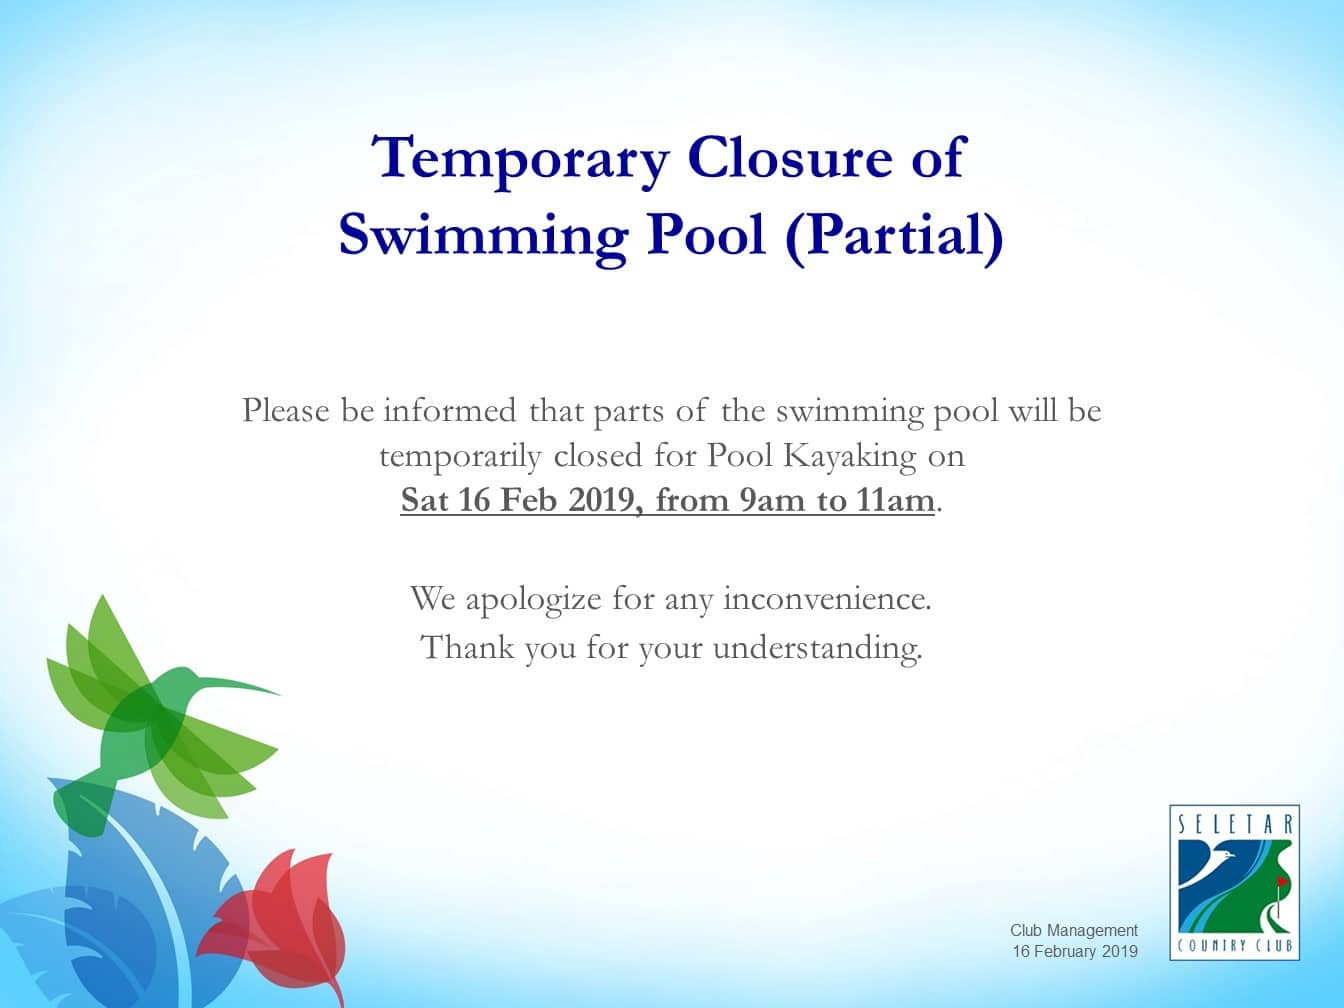 Temporary Closure of Swimming Pool for Pool Kayaking